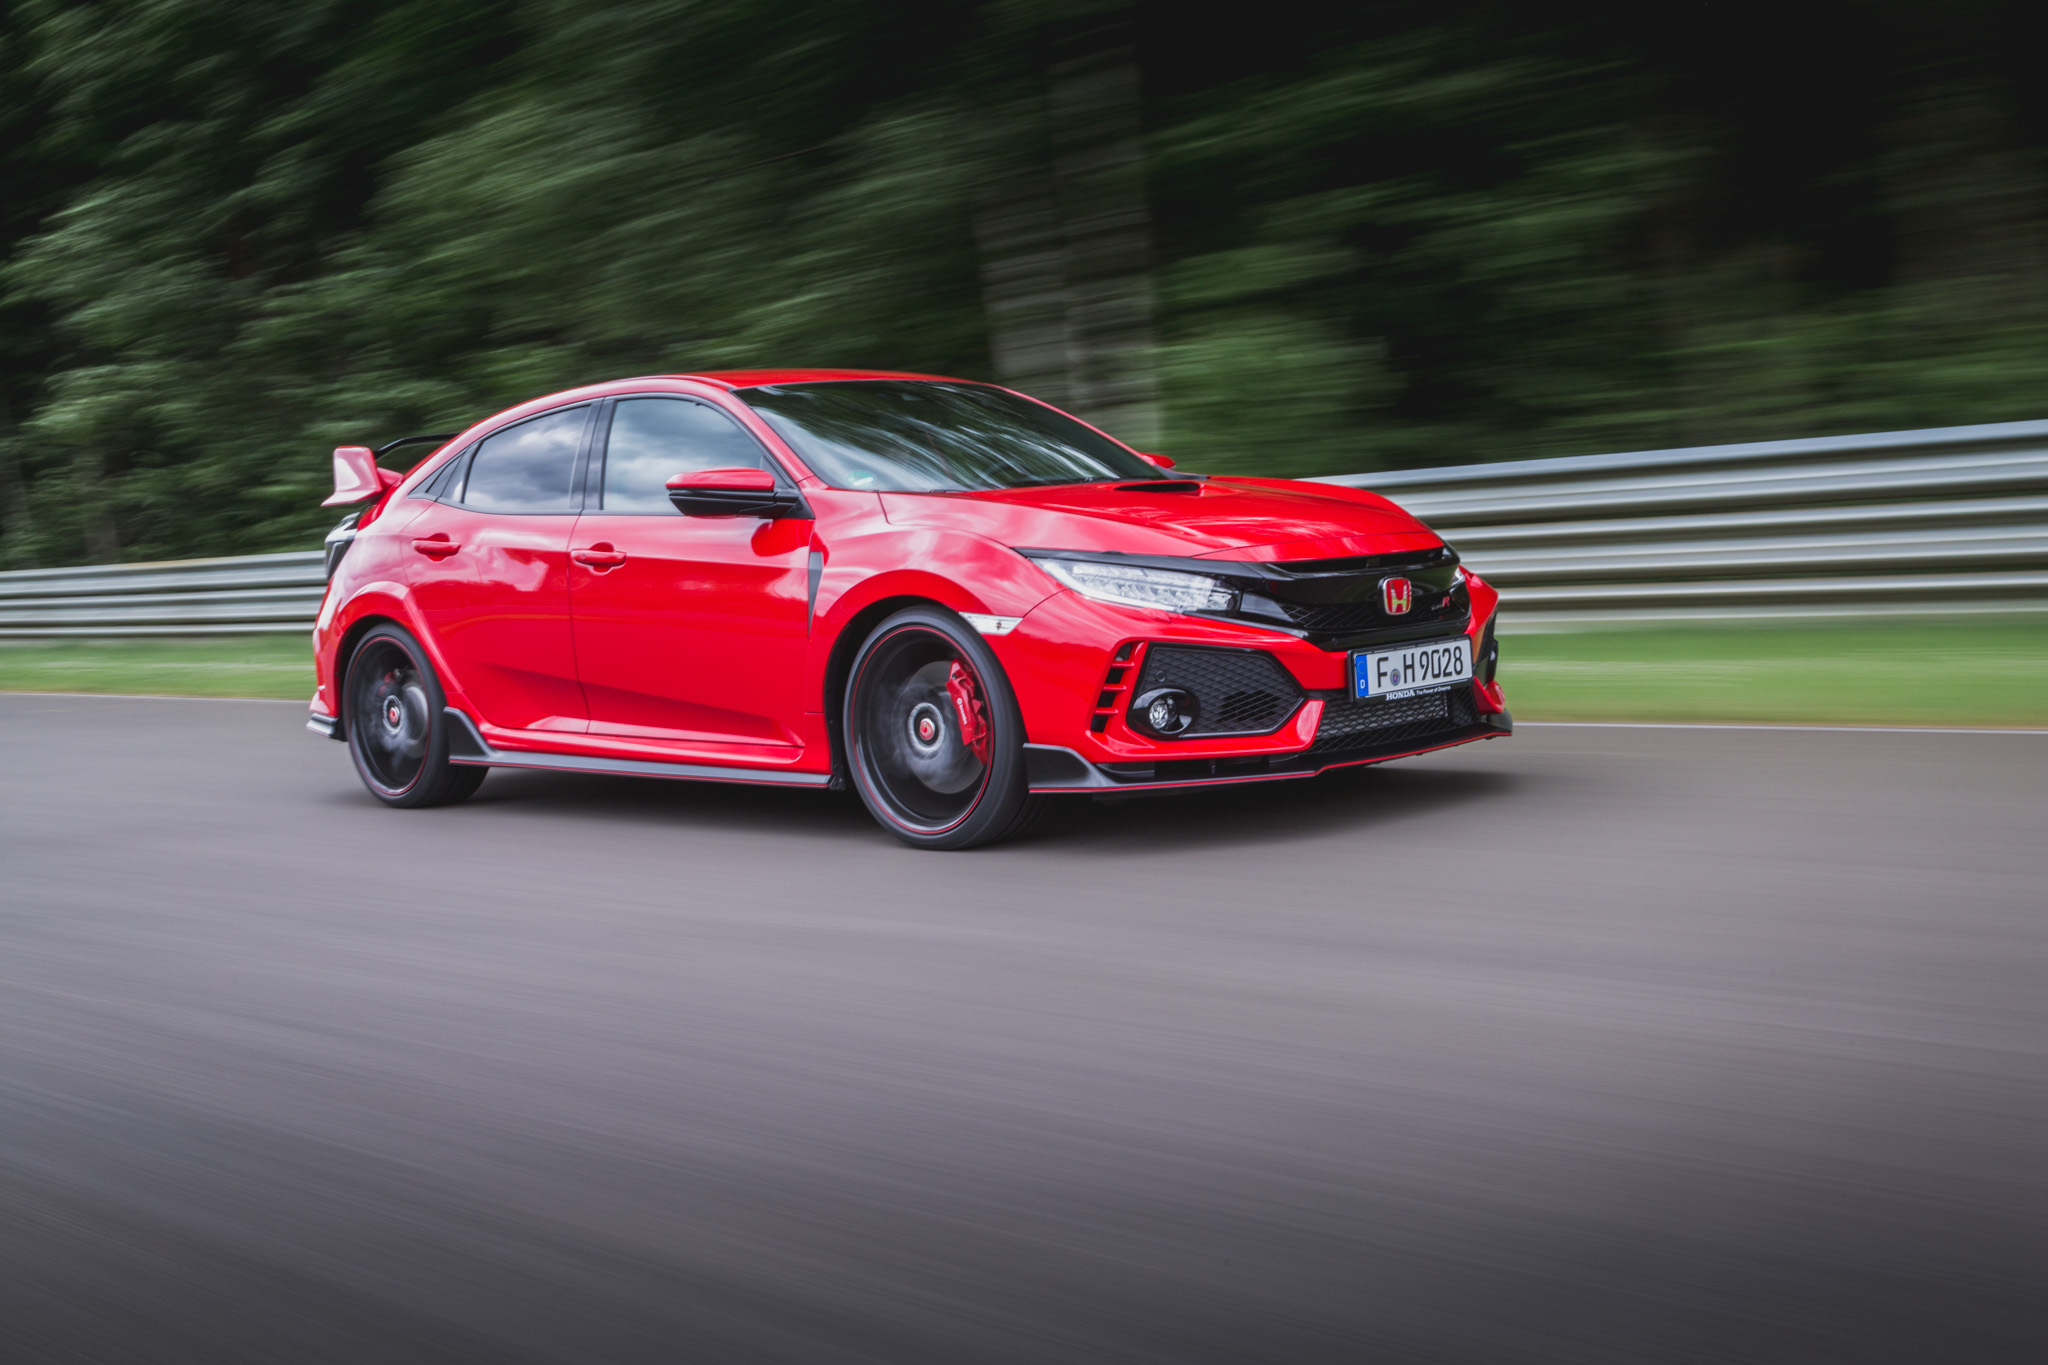 2017 Honda Civic Type R Fk8 Review on car audio